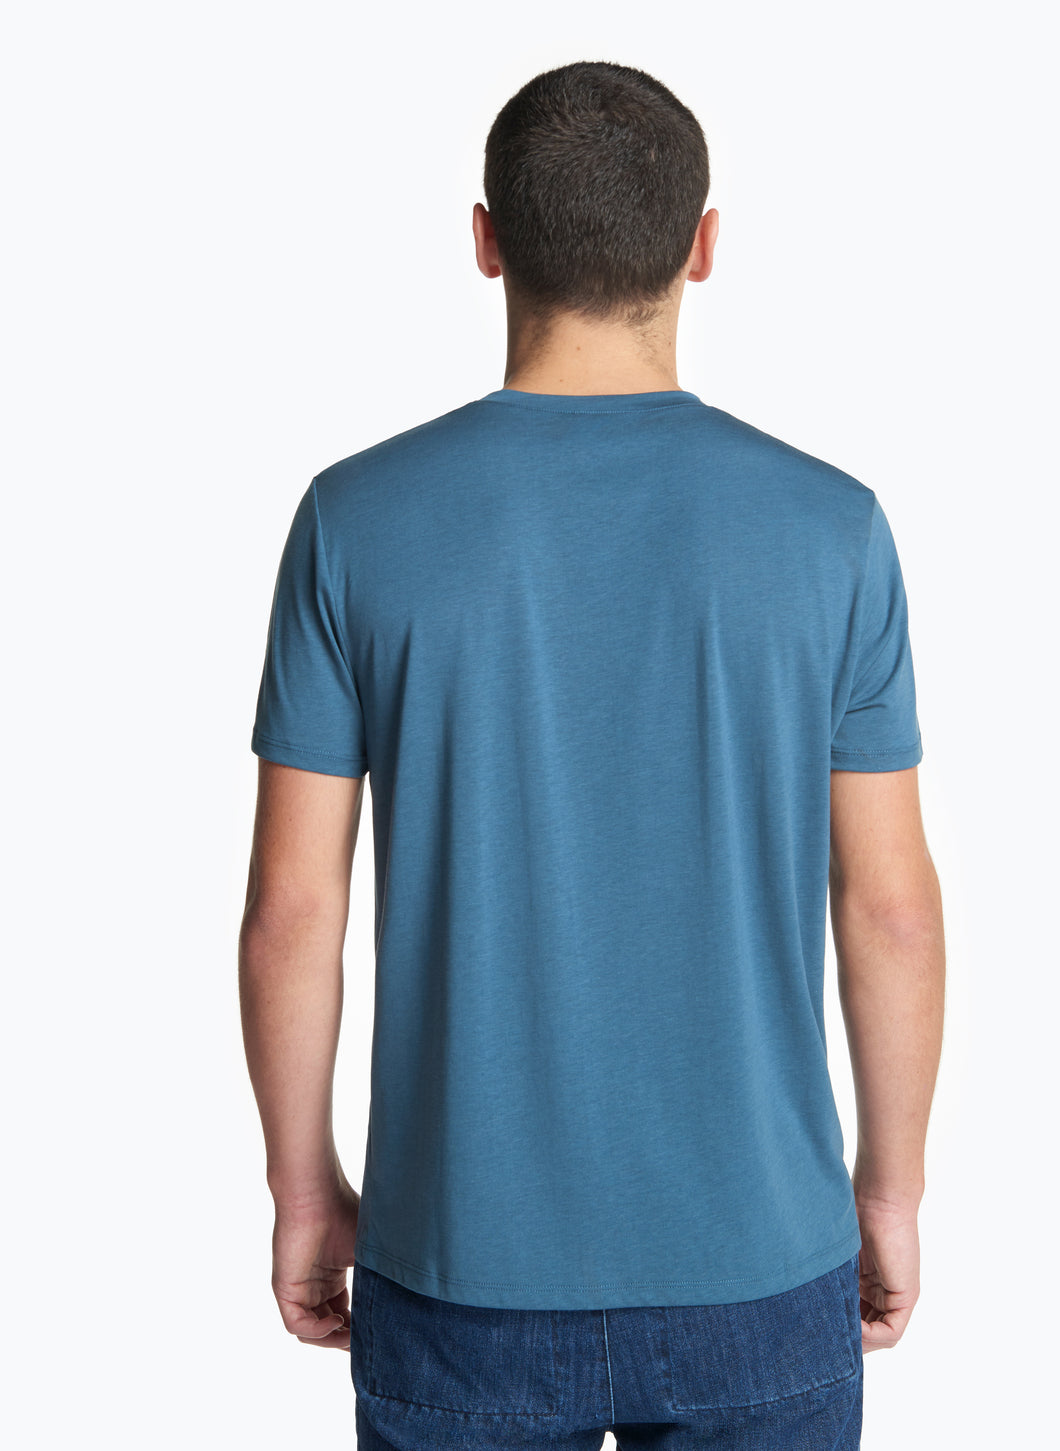 Short Sleeve Crew Neck T-Shirt in Petrol Tencel